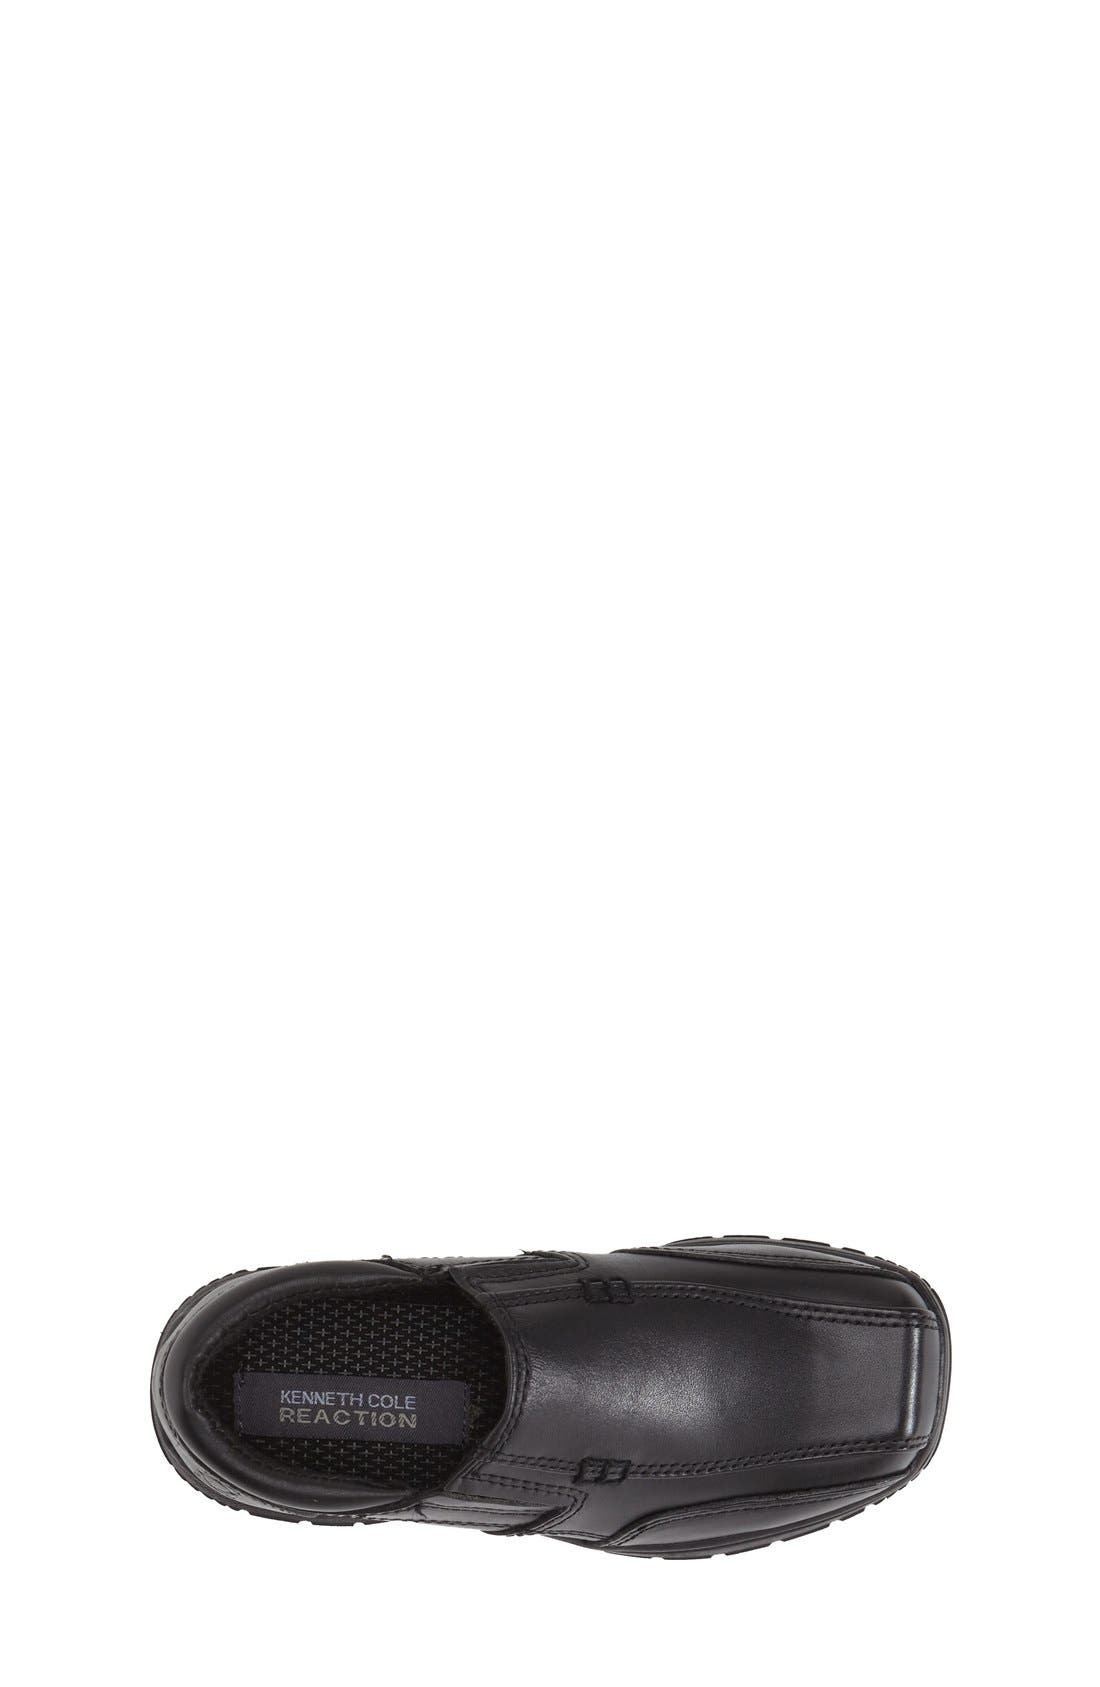 Reaction Kenneth Cole'Check N Check' Loafer,                             Alternate thumbnail 3, color,                             001